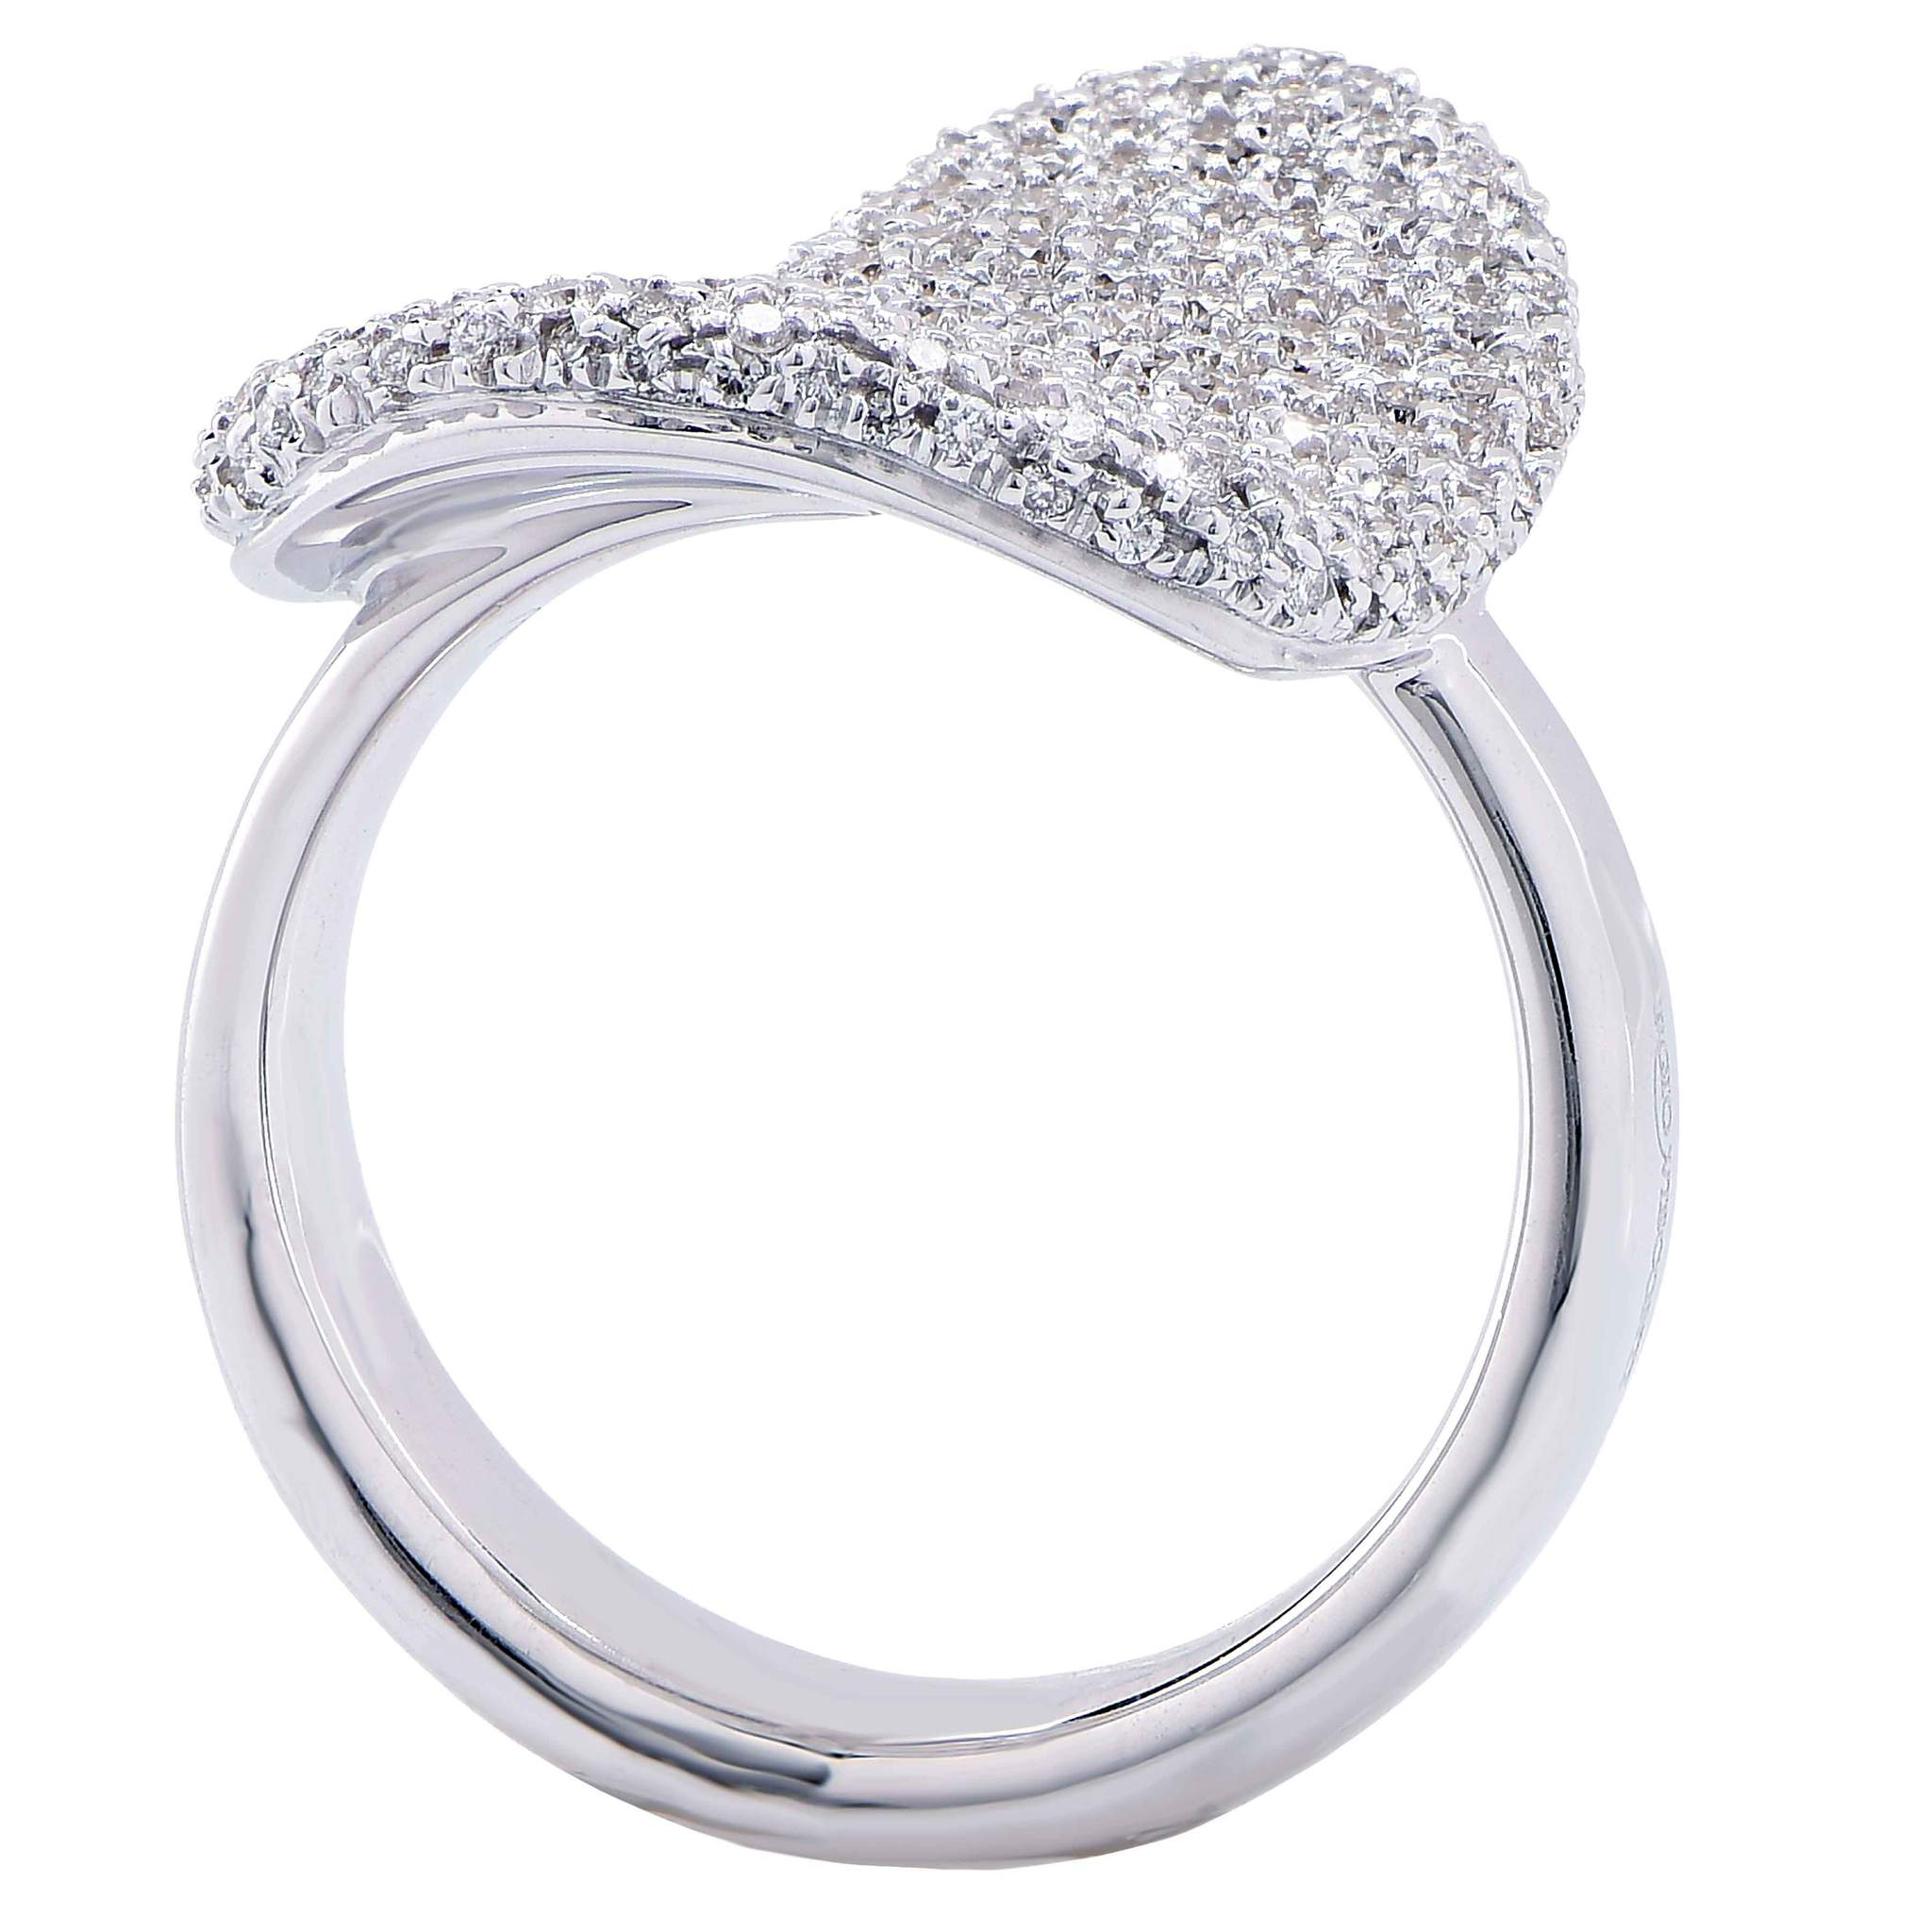 2048x2048 Georgio Visconti 1.10 Carat Diamond Heart Shaped White Gold Ring